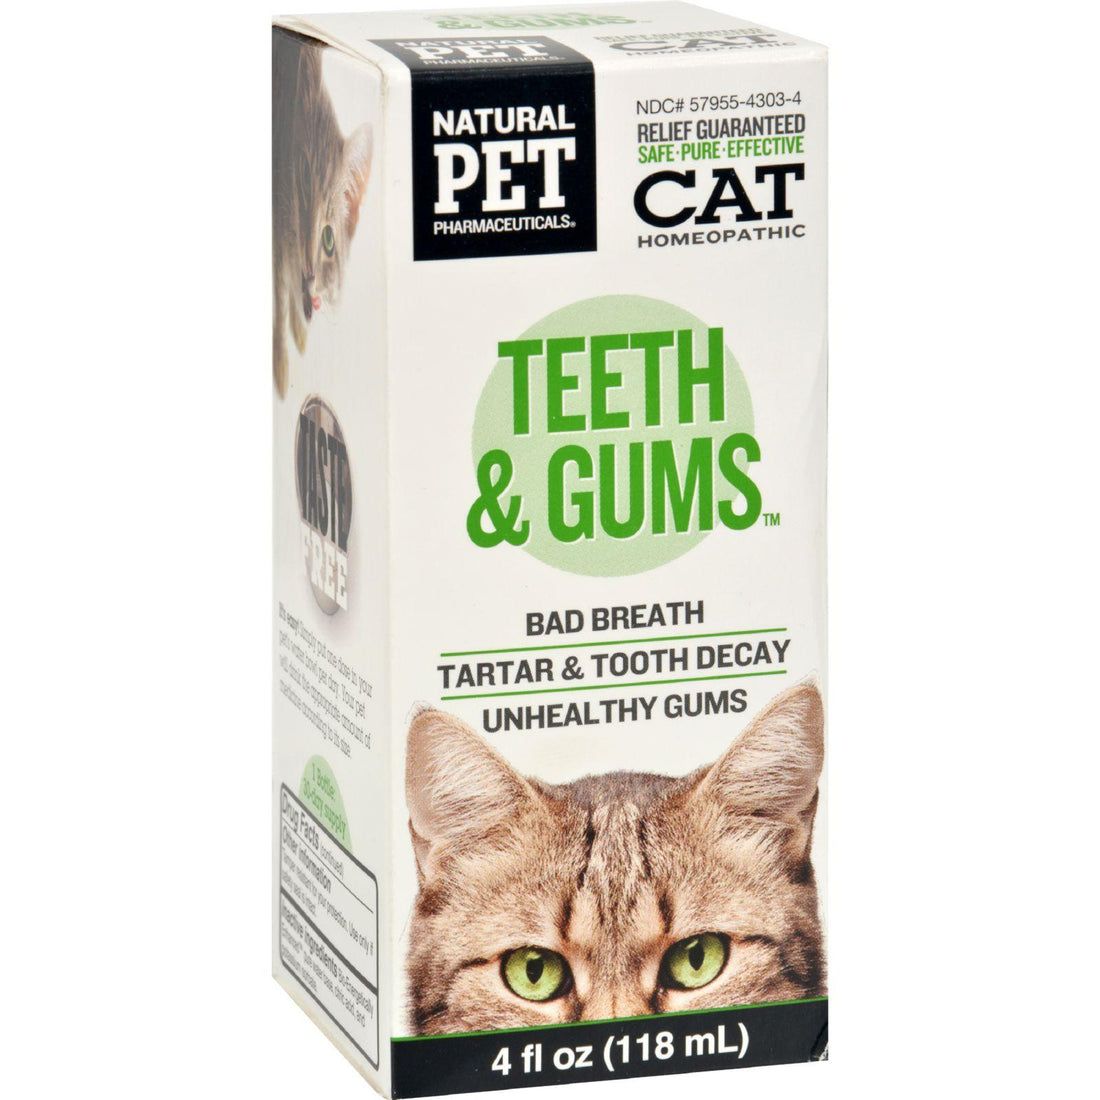 Mother Mantis: King Bio Homeopathic Natural Pet Cat - Teeth And Gums - 4 Oz King Bio Homeopathic